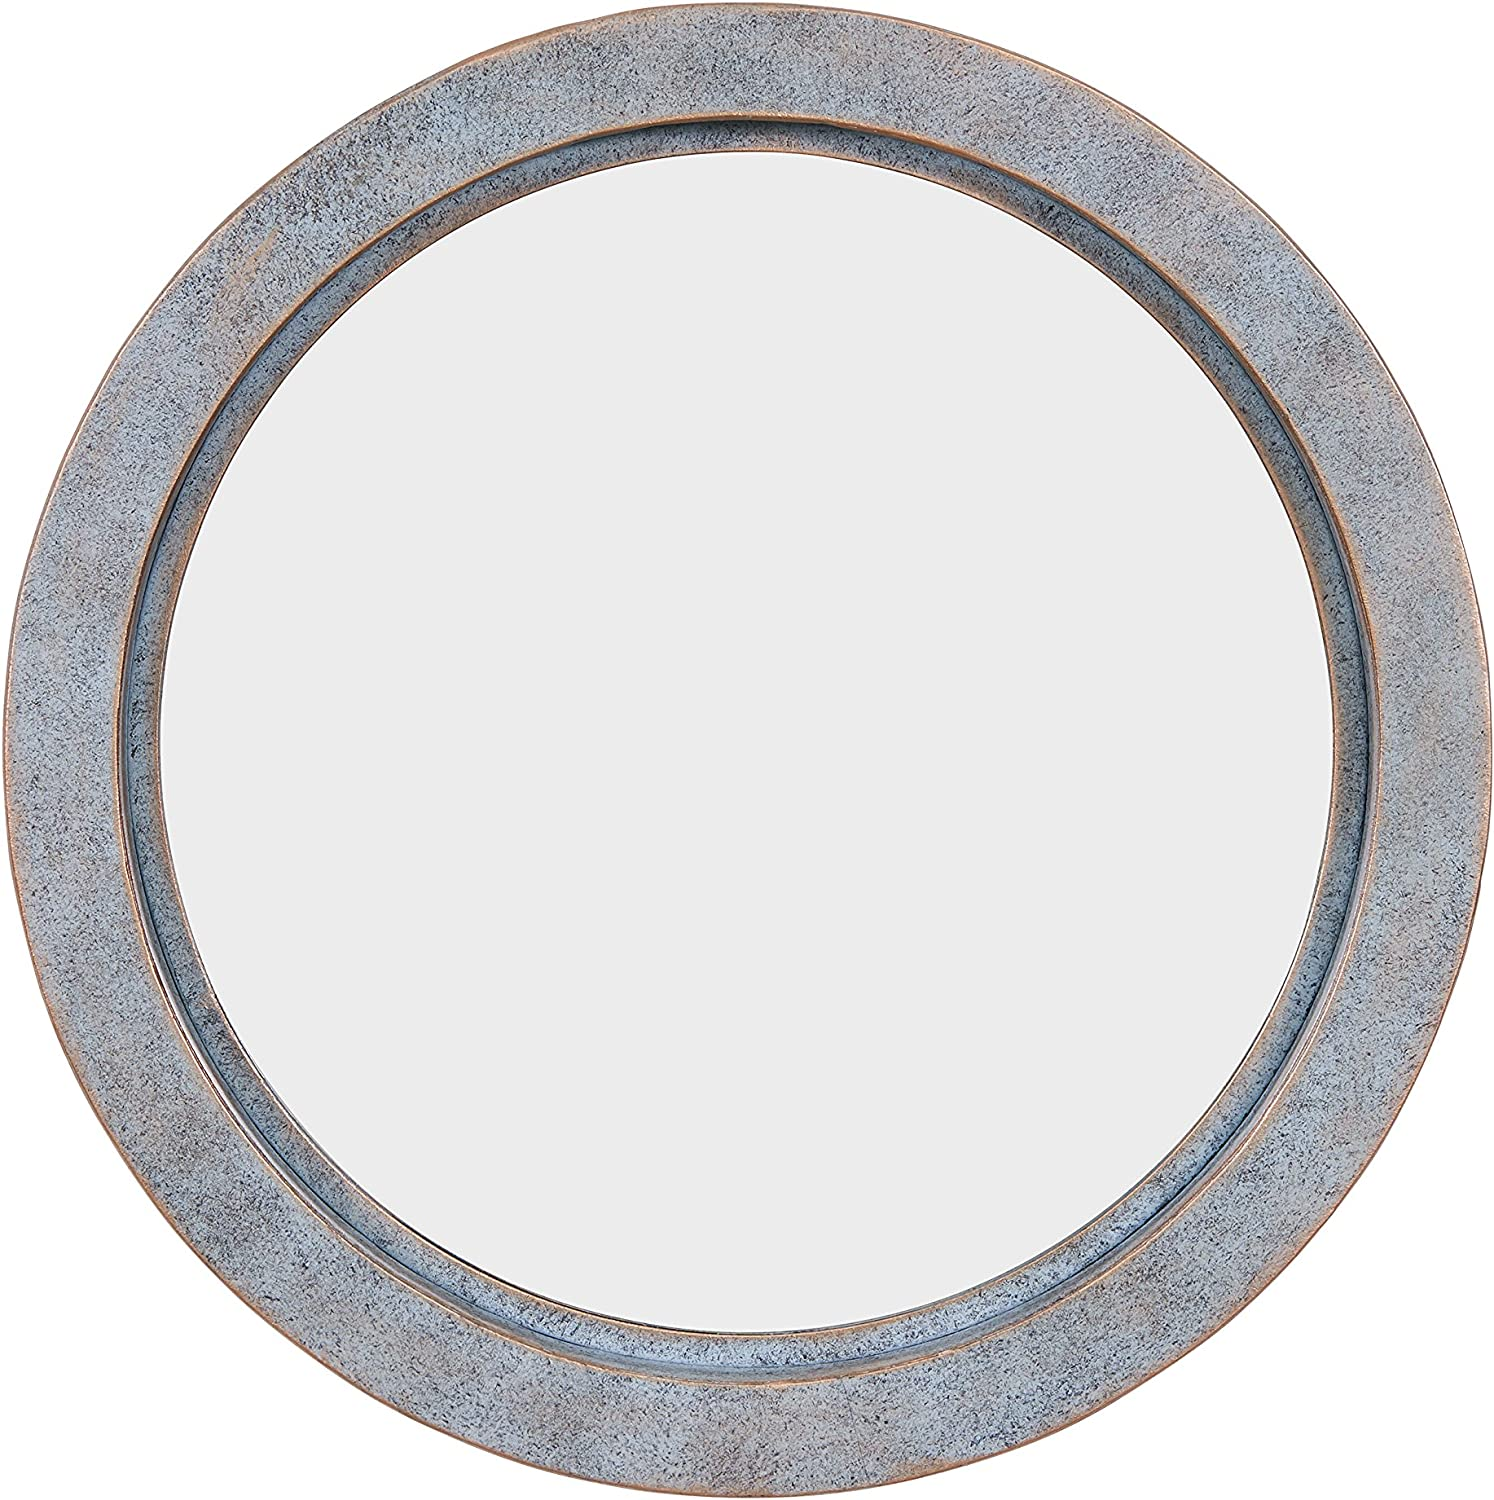 Danya B. FHB1715 Modern Industrial Floating Round 20-Inch Wall Mirror with Antiqued Copper Metal Frame - Contemporary Framed Hanging Mirror